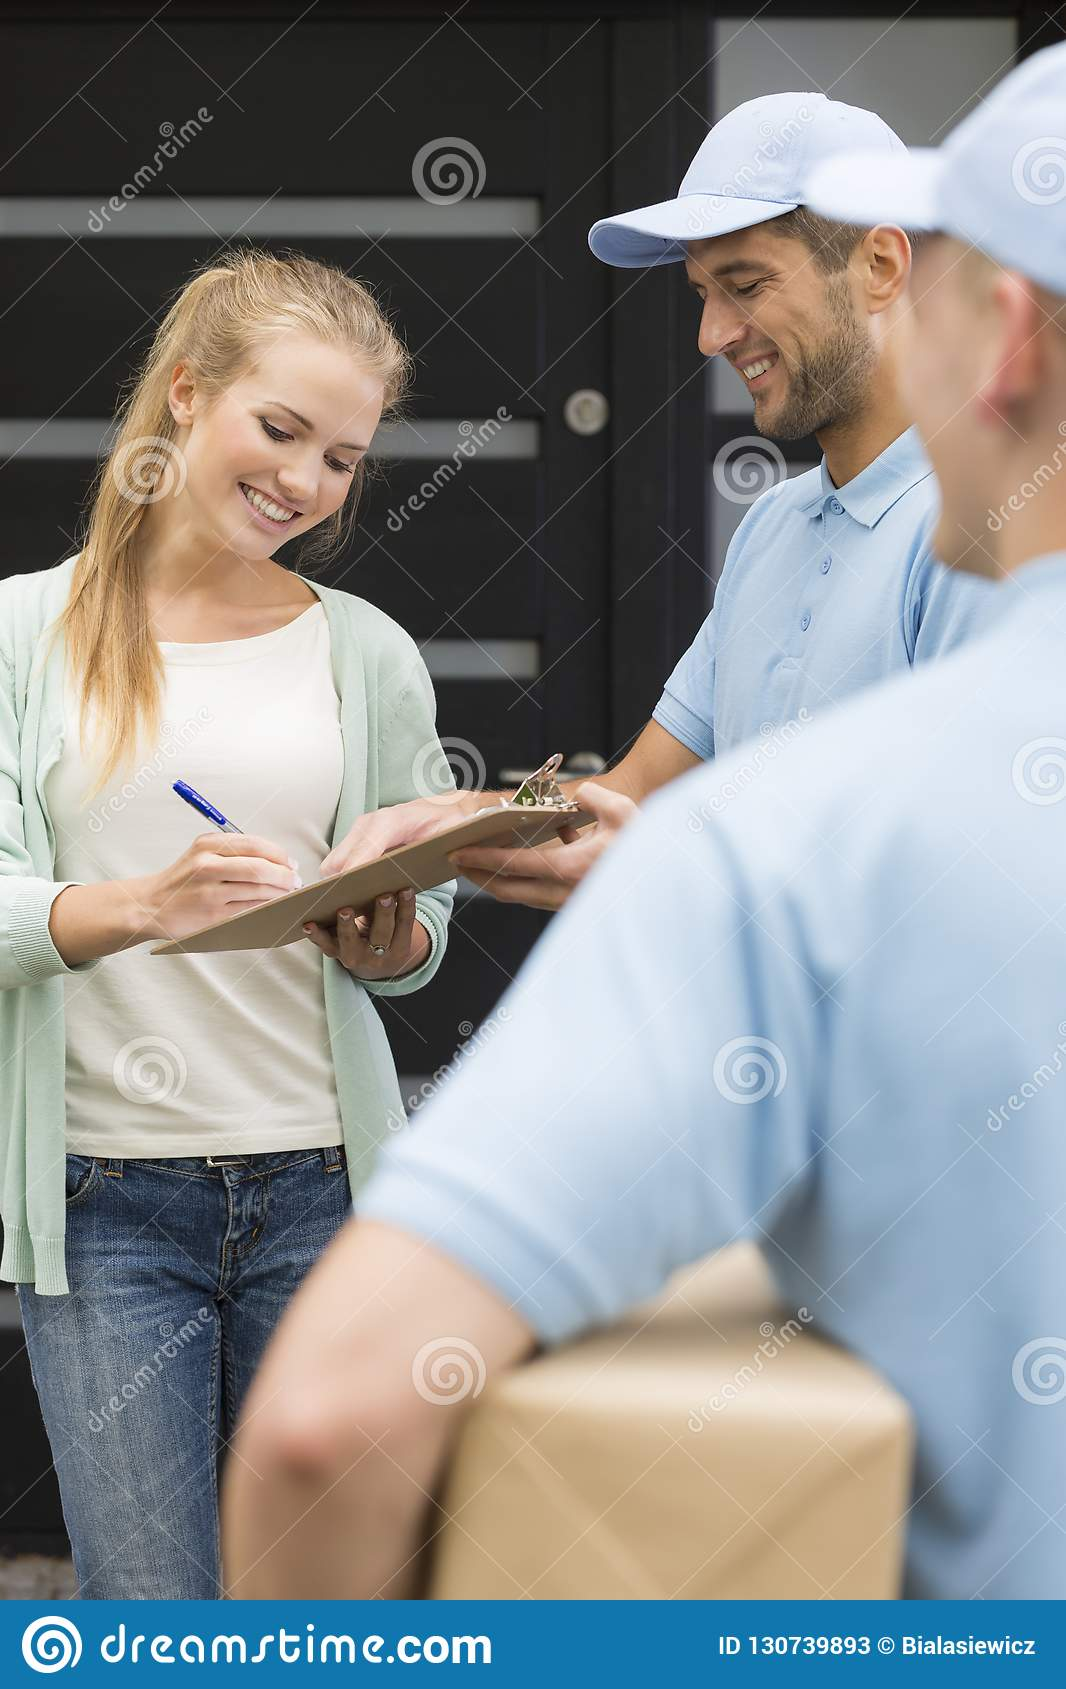 Couriers and smiling customer signing receipt of package delivery